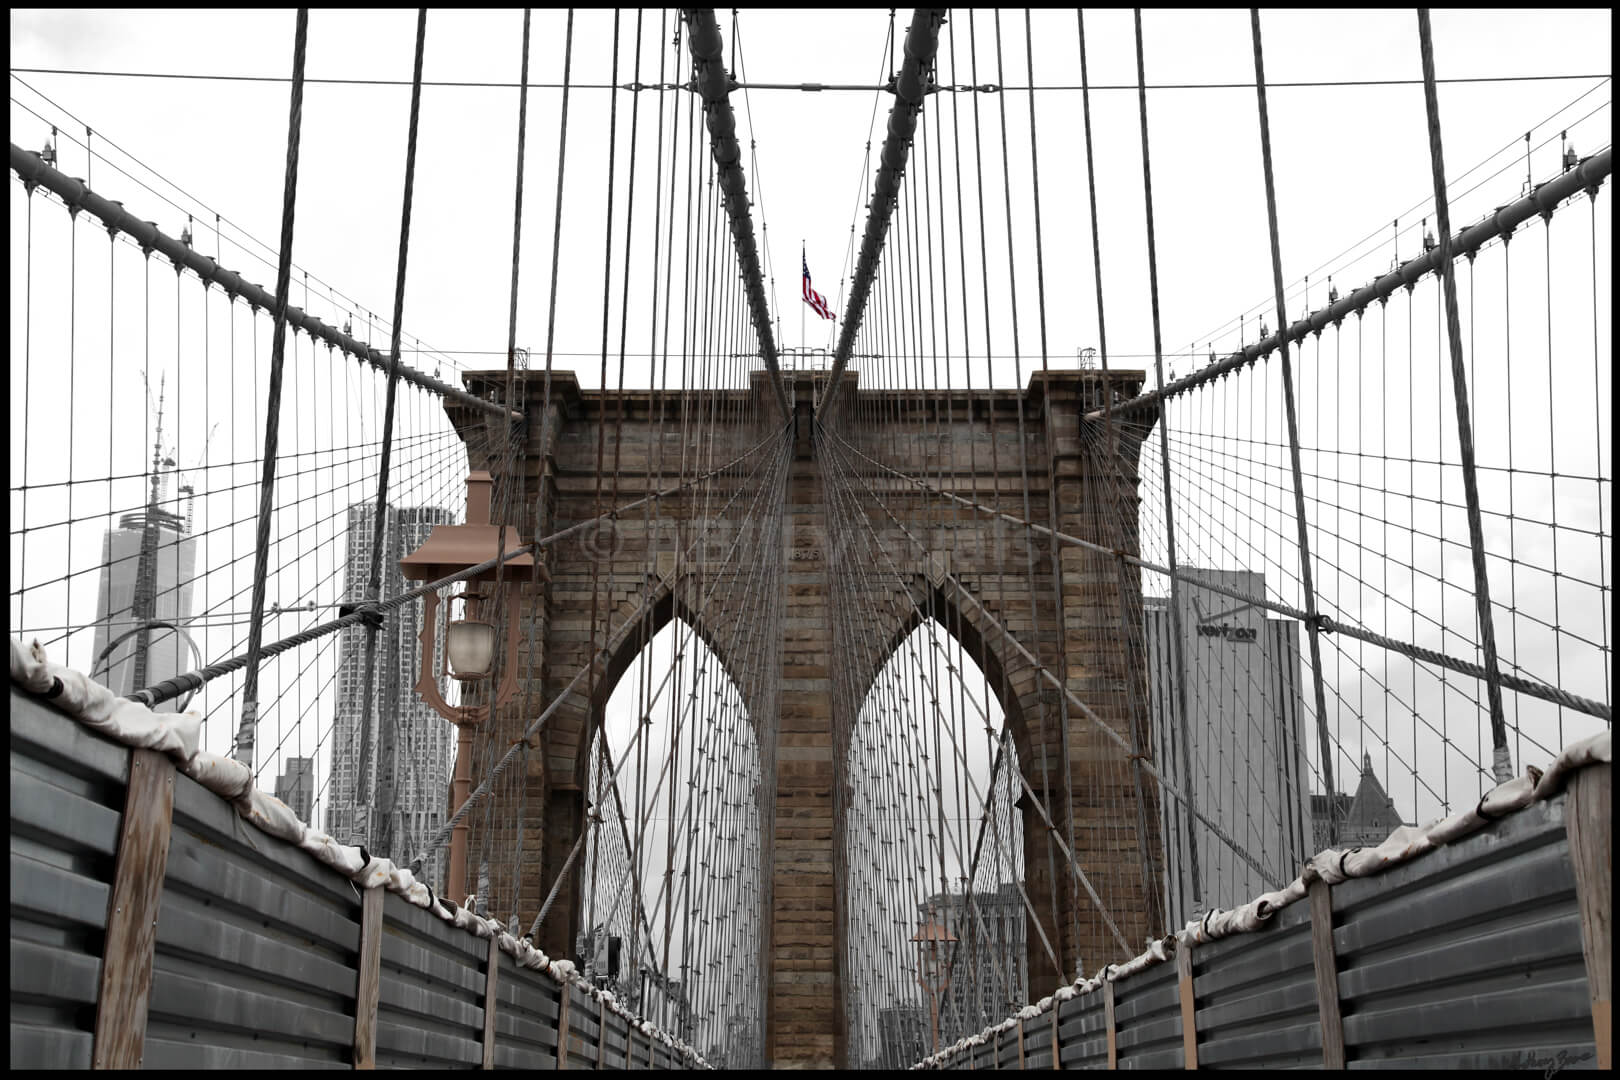 Brooklyn Bridge Print.jpg